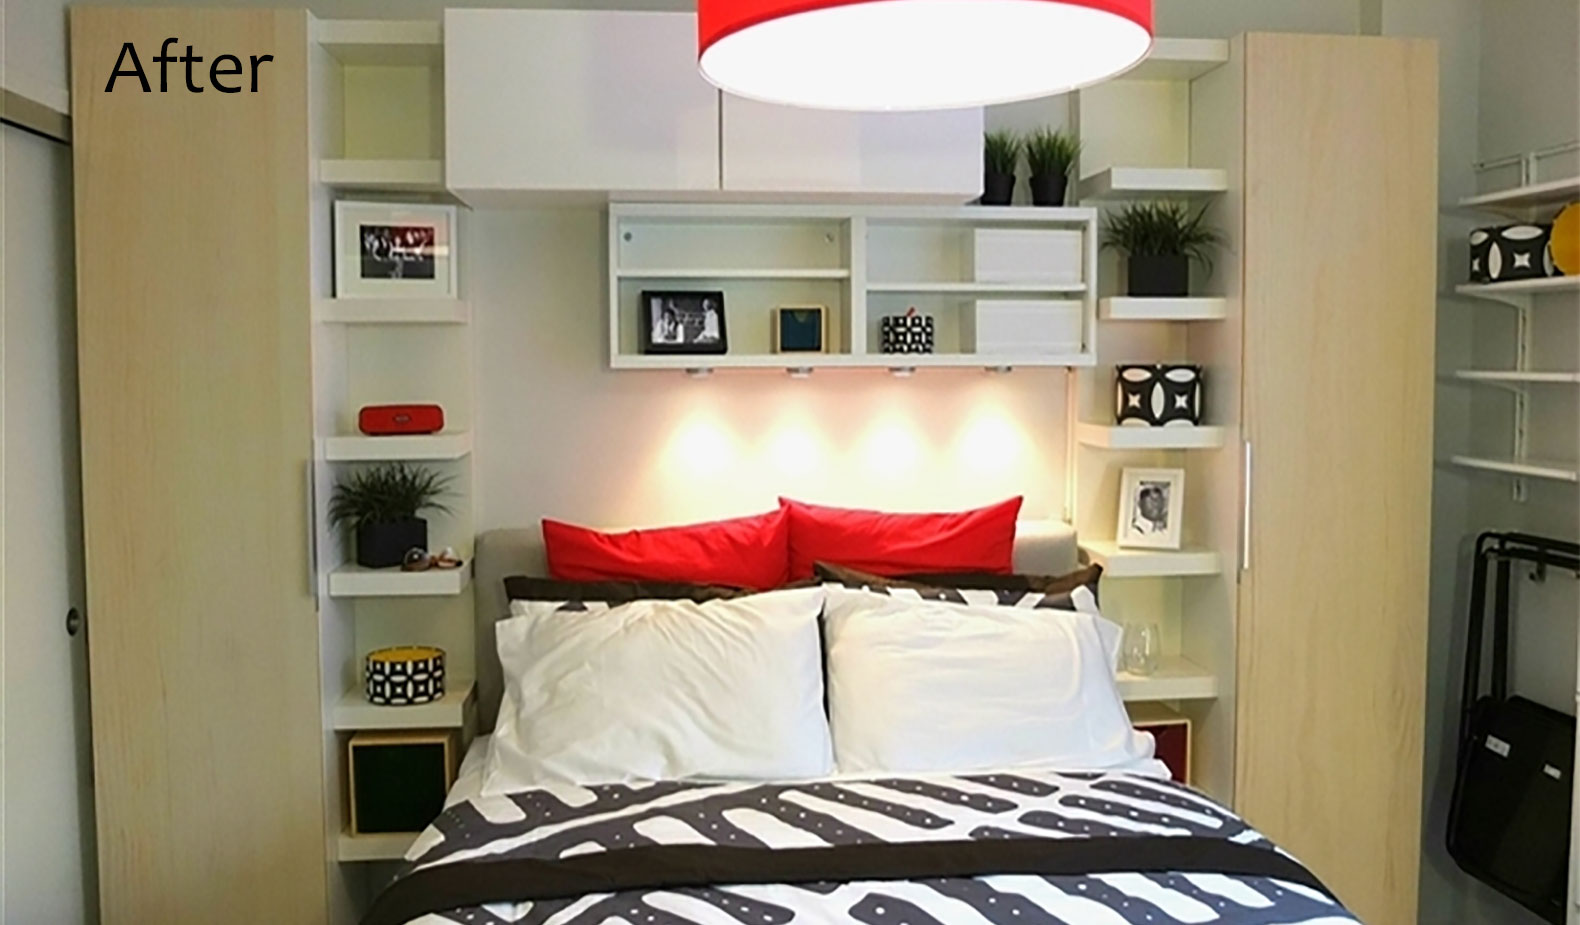 Ikea Small Apartment see ikea's storage-maximizing makeover of a 300-sq-ft studio